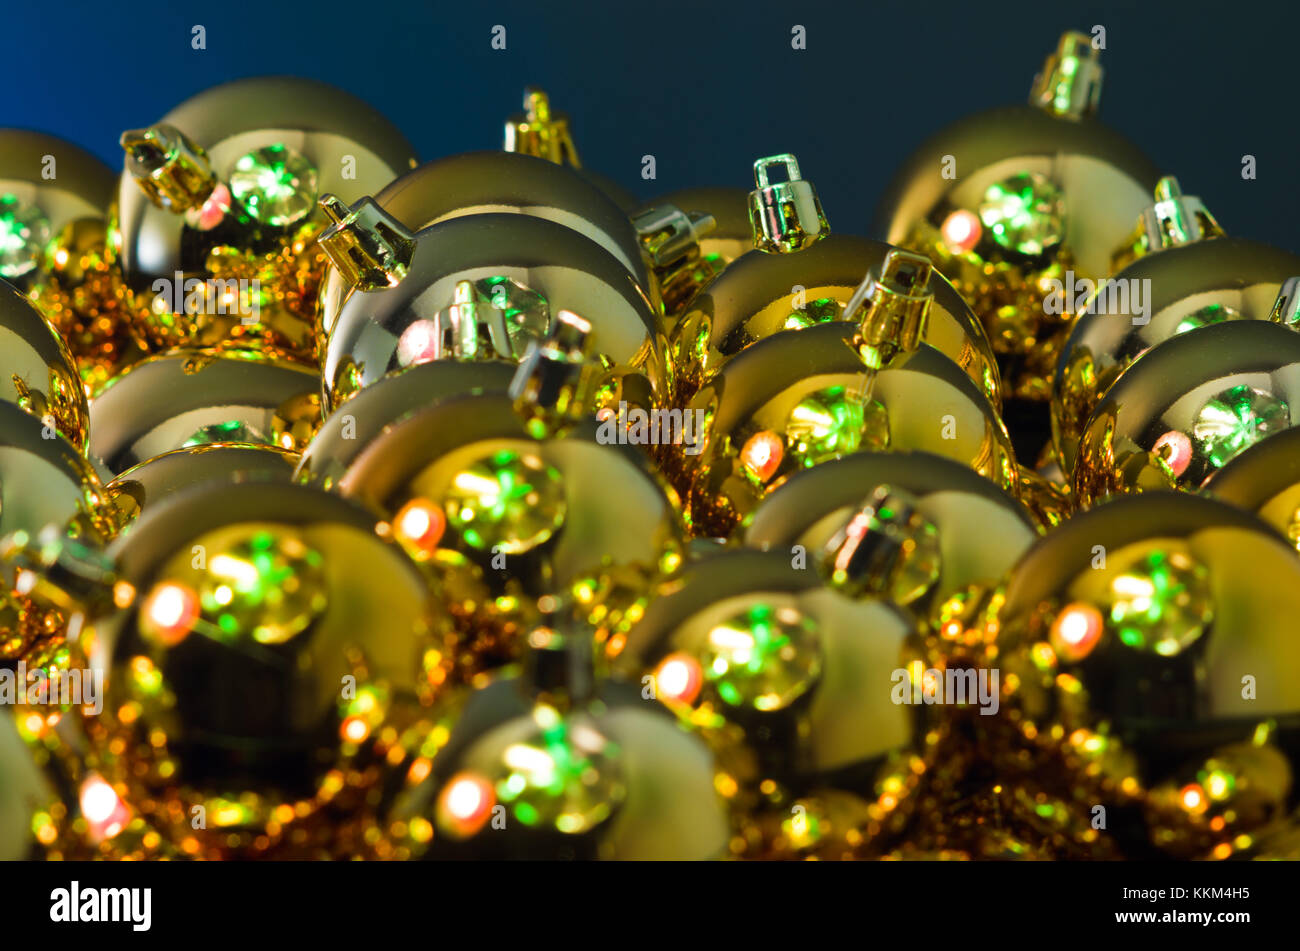 Close-up view of set of luxury Christmas baubles in colourful warm light. - Stock Image